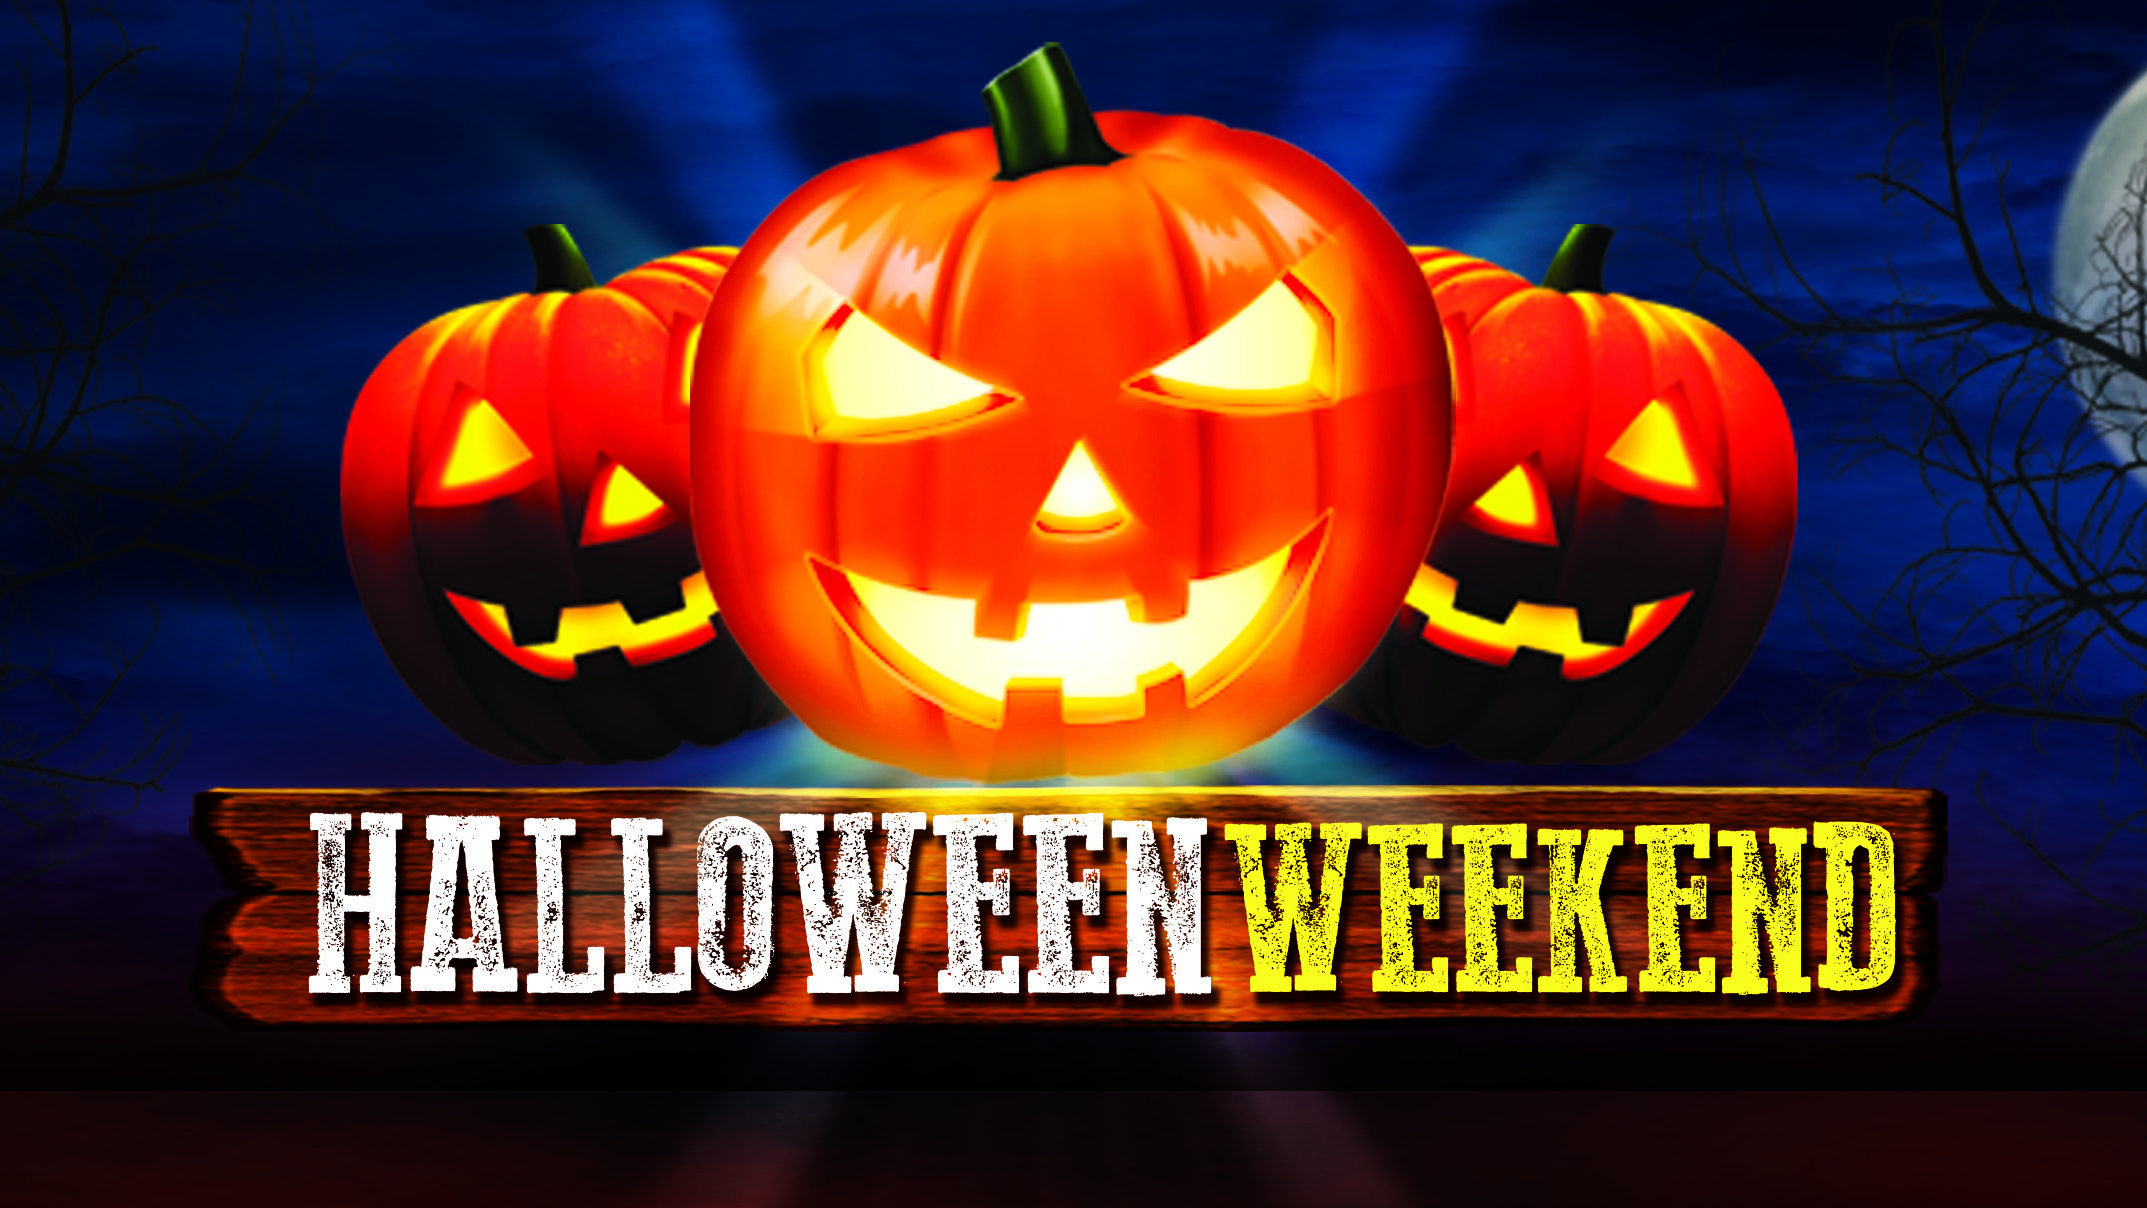 Flagrant Timeline Halloween Weekend Cover Band Free Halloween Weekend Cover Band Free Cape Marina Halloween Cover Photos Hd Halloween Cover Photos photos Halloween Cover Photos